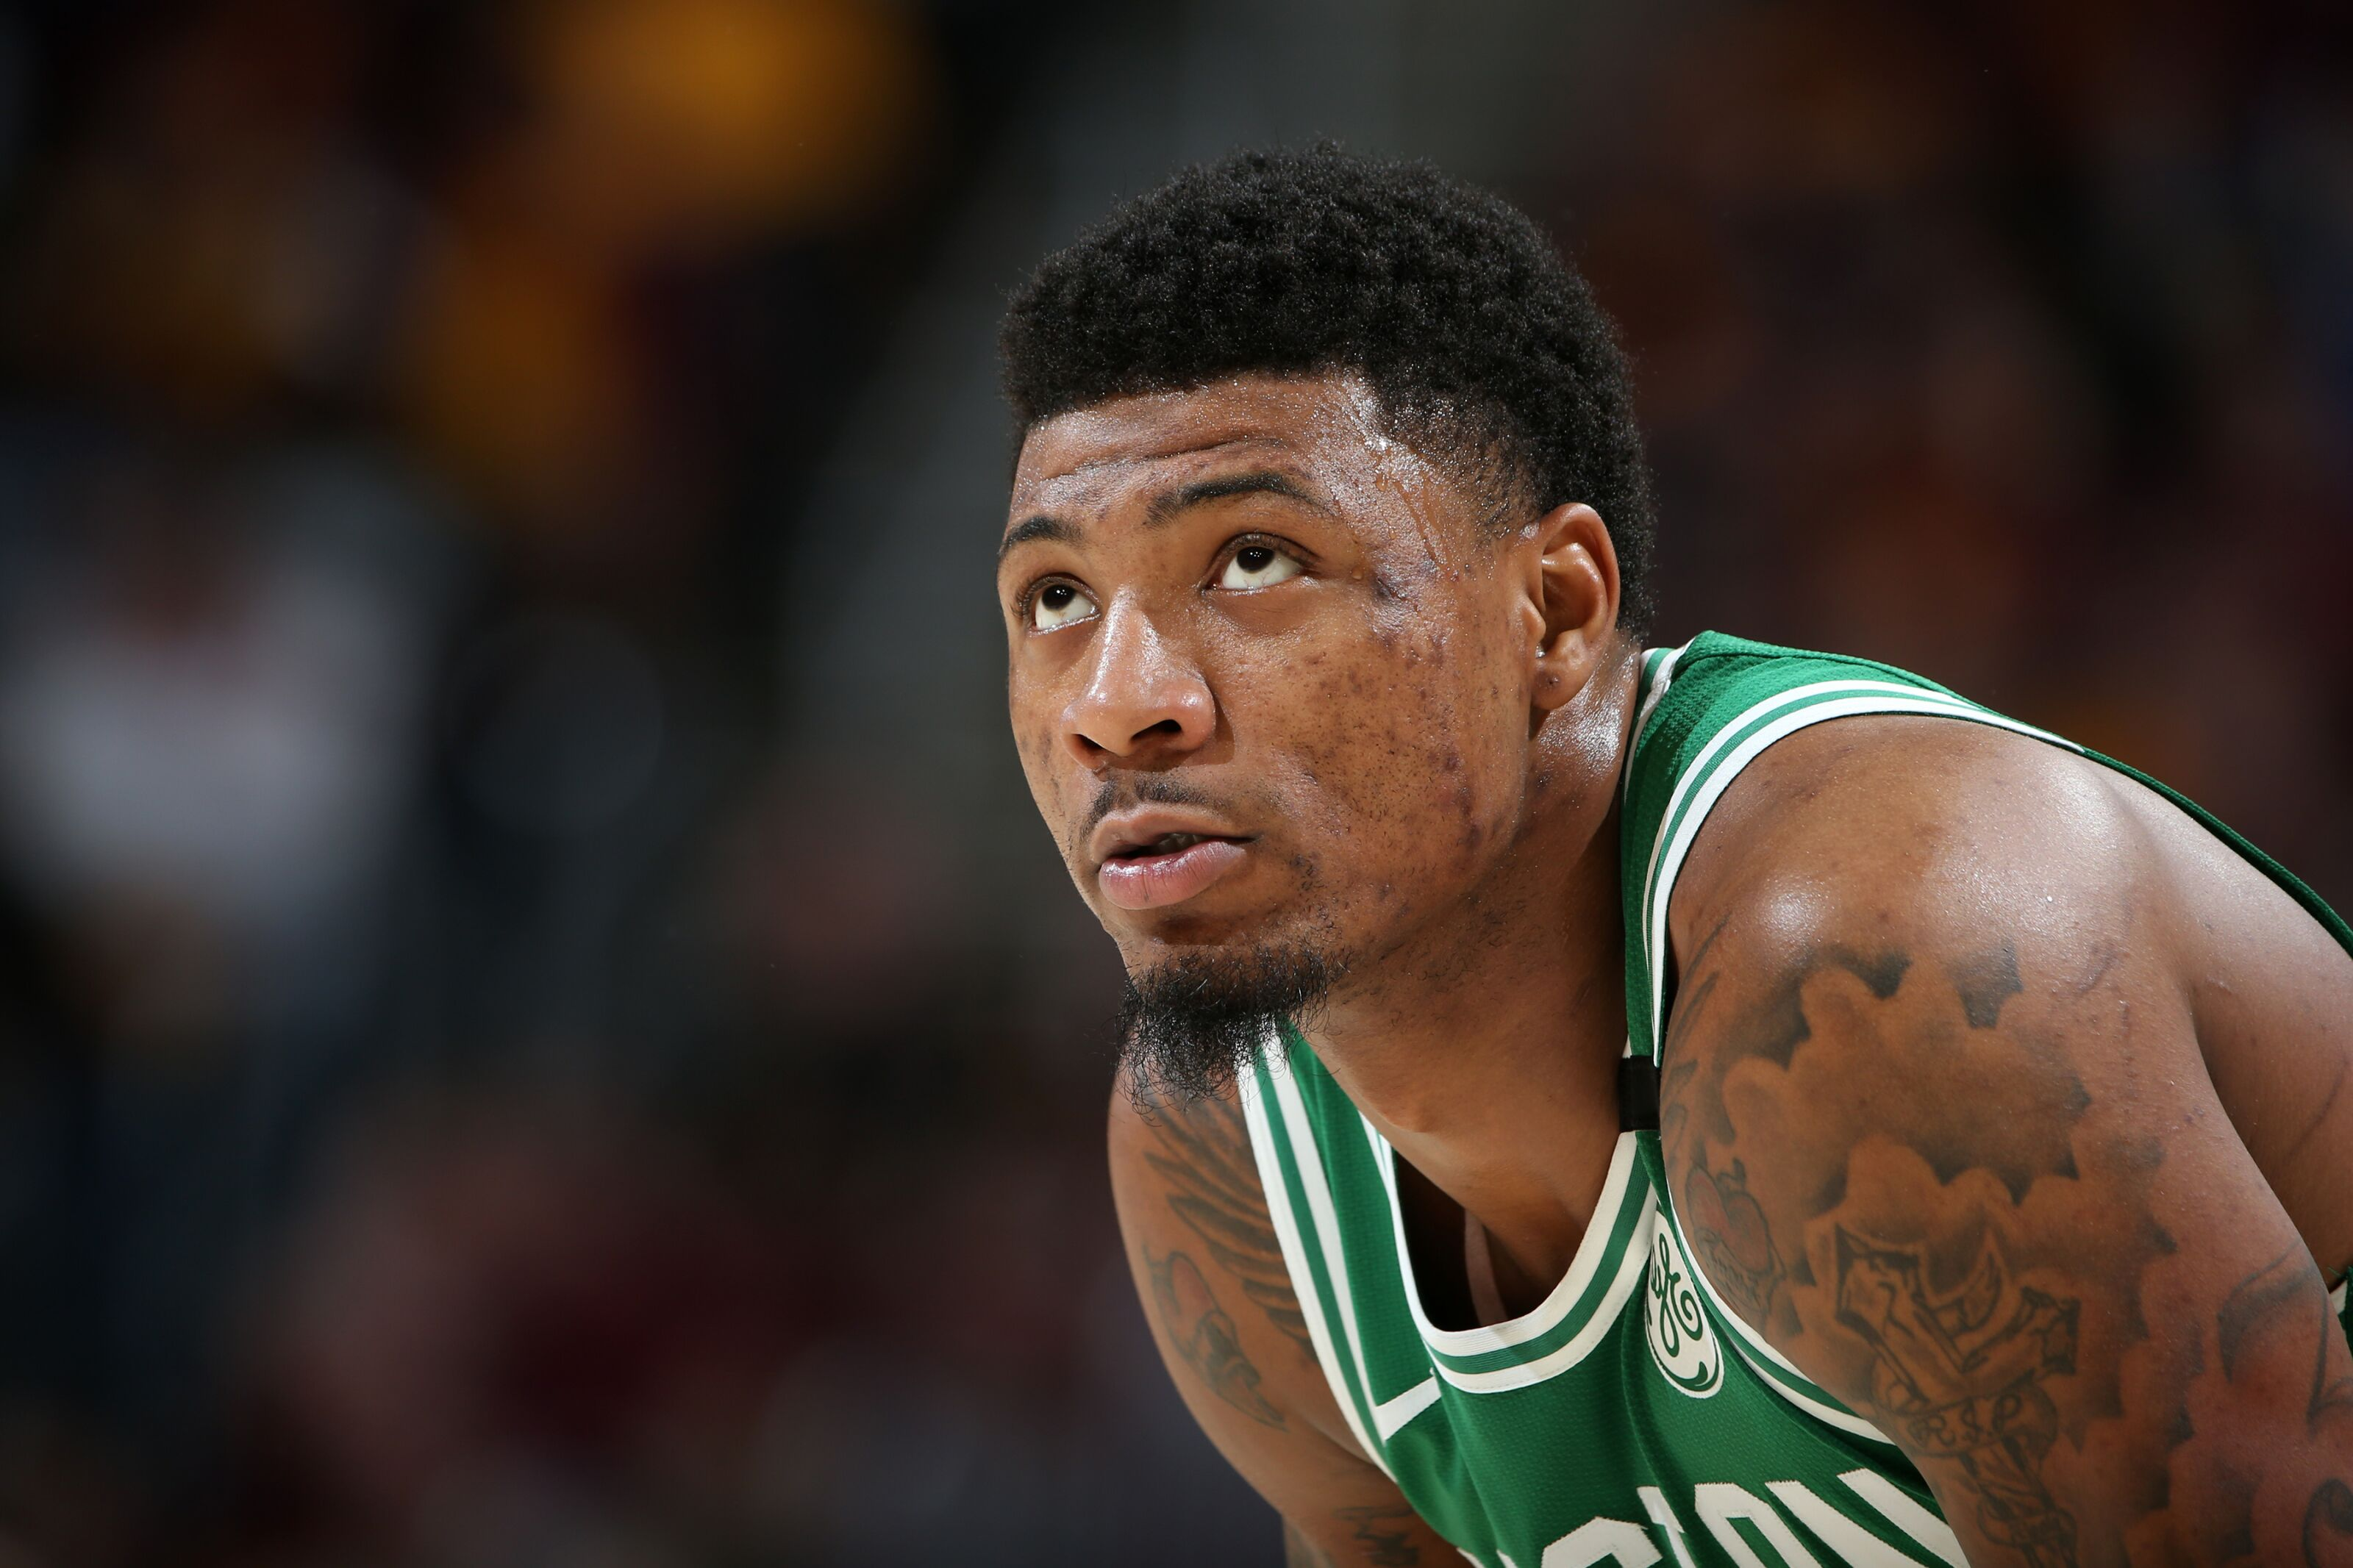 Cleveland Oh May 21 Marcus Smart 36 Of The Boston Celtics Looks